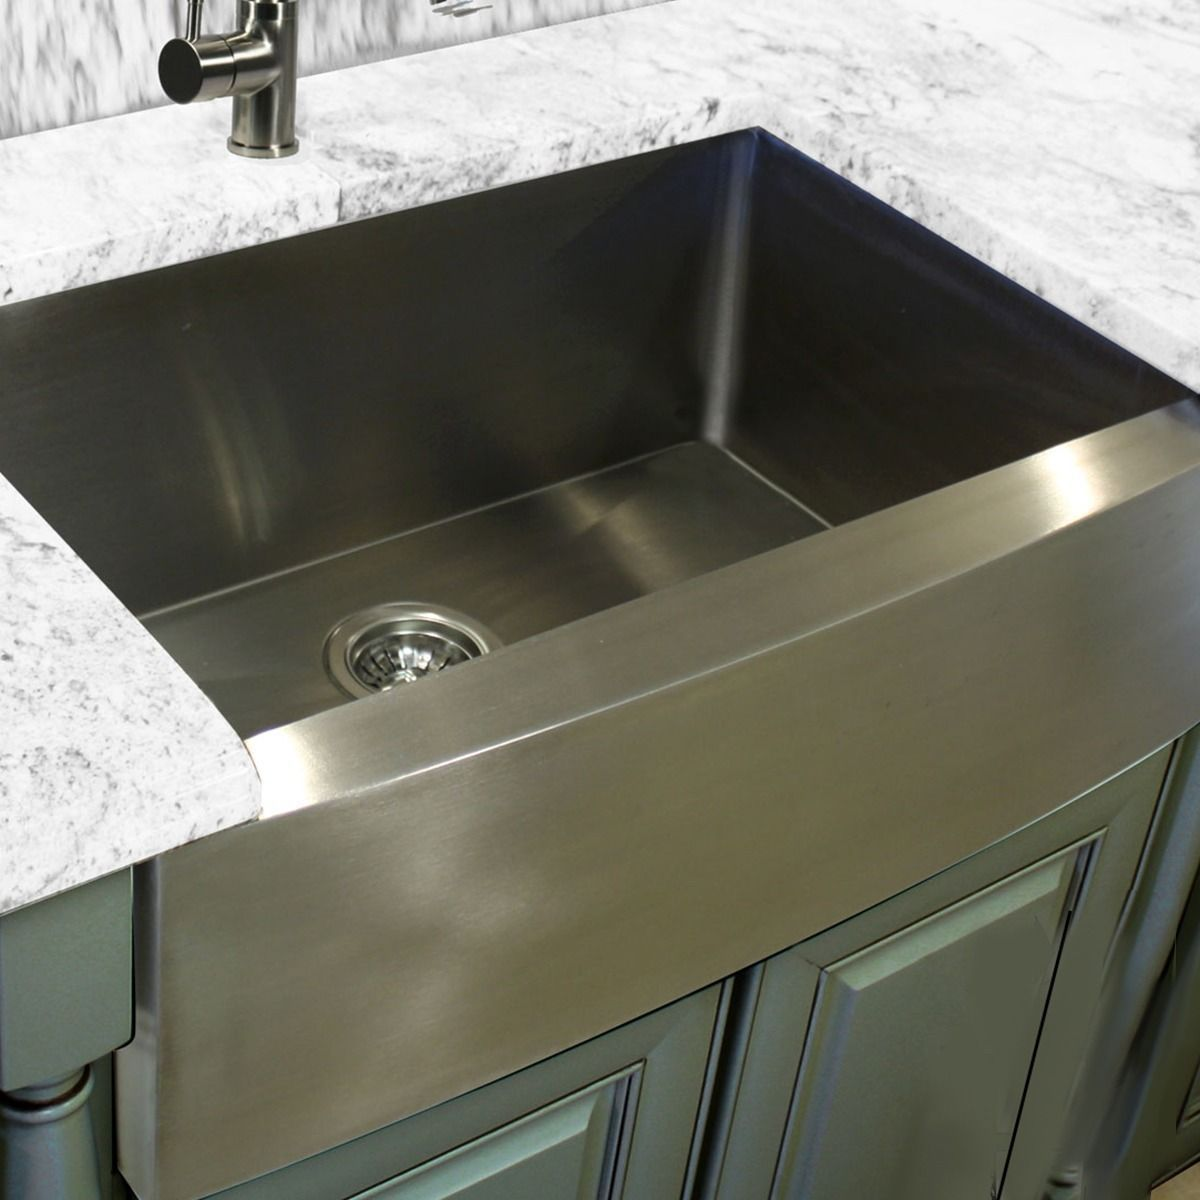 Kitchen Find Your Perfect Kitchen Farm Sinks For Kitchen: This 30-inch Stainless Steel Kitchen Sink Makes A Perfect